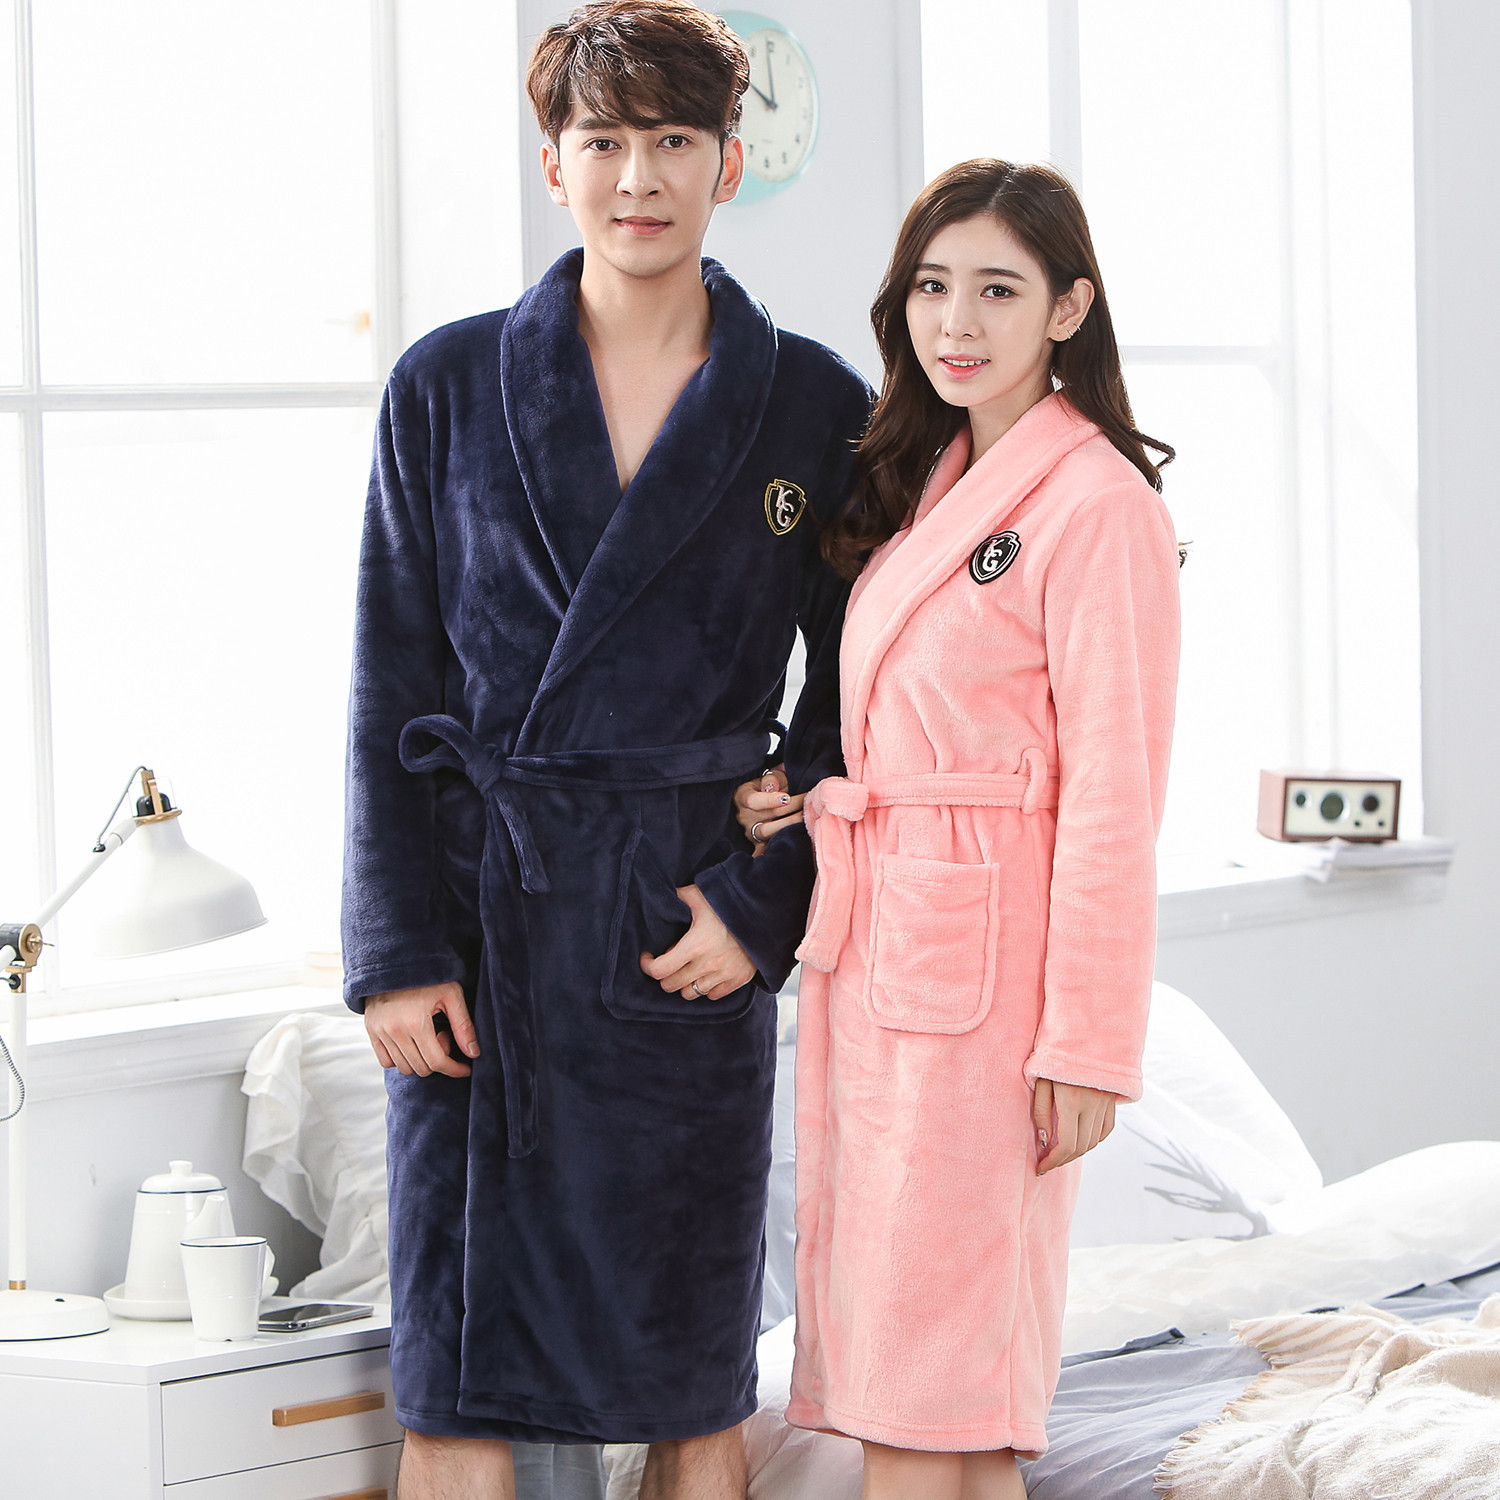 Men&women Robe Intimate Lingerie Solid Colour Kimono Bathrobe Gown Home Dressing Gown Coral Fleece Sleepwear Large Size 3XL